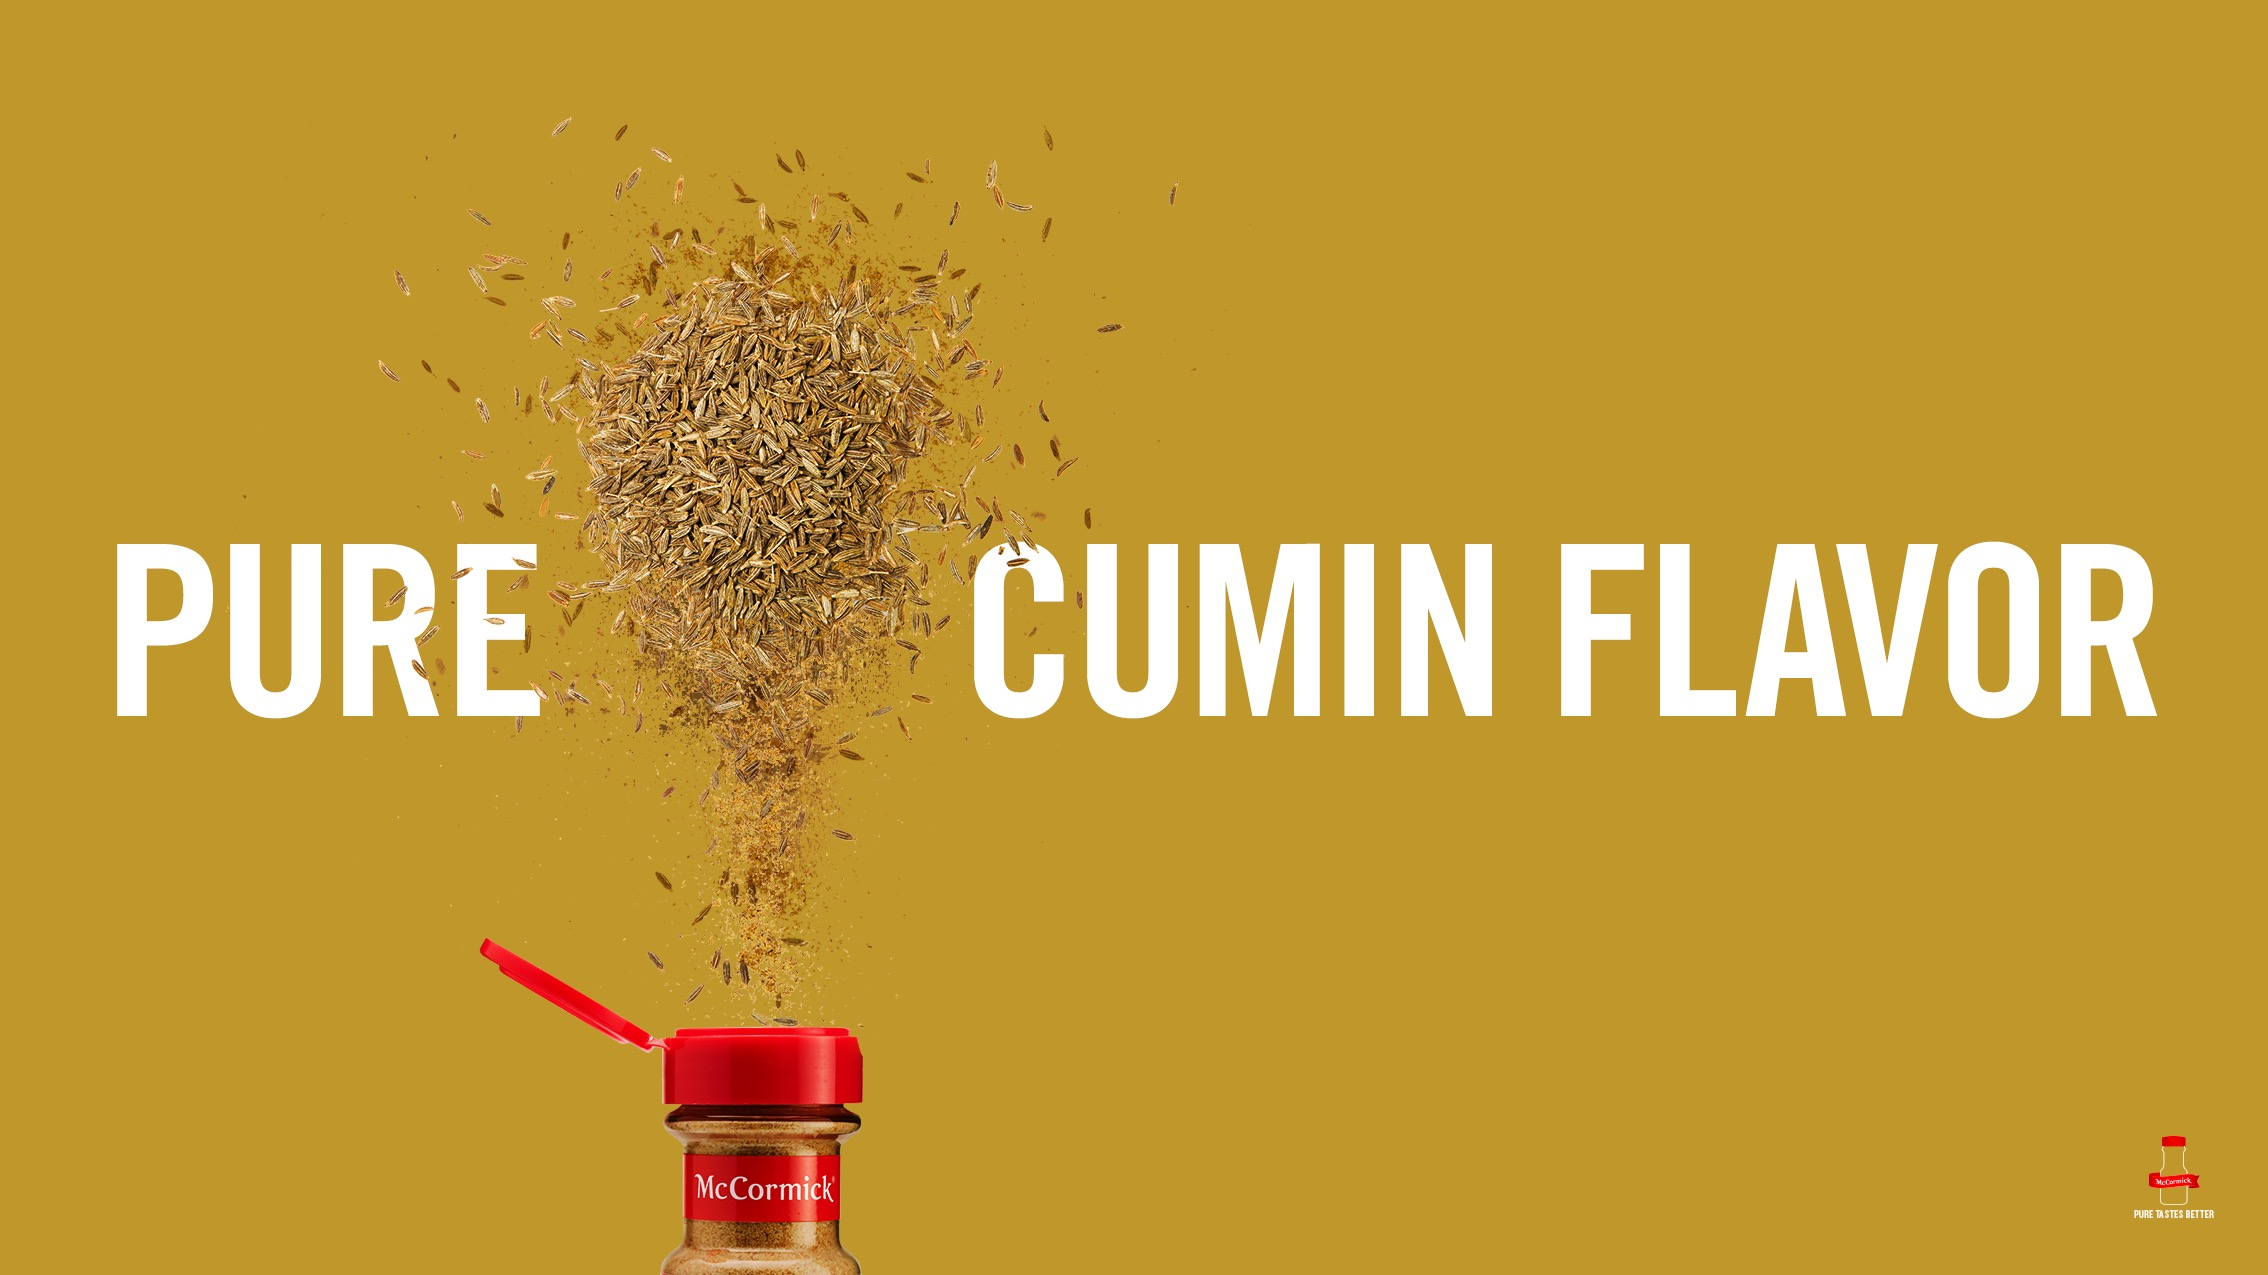 PureIngredients_0208_Cumin.jpeg